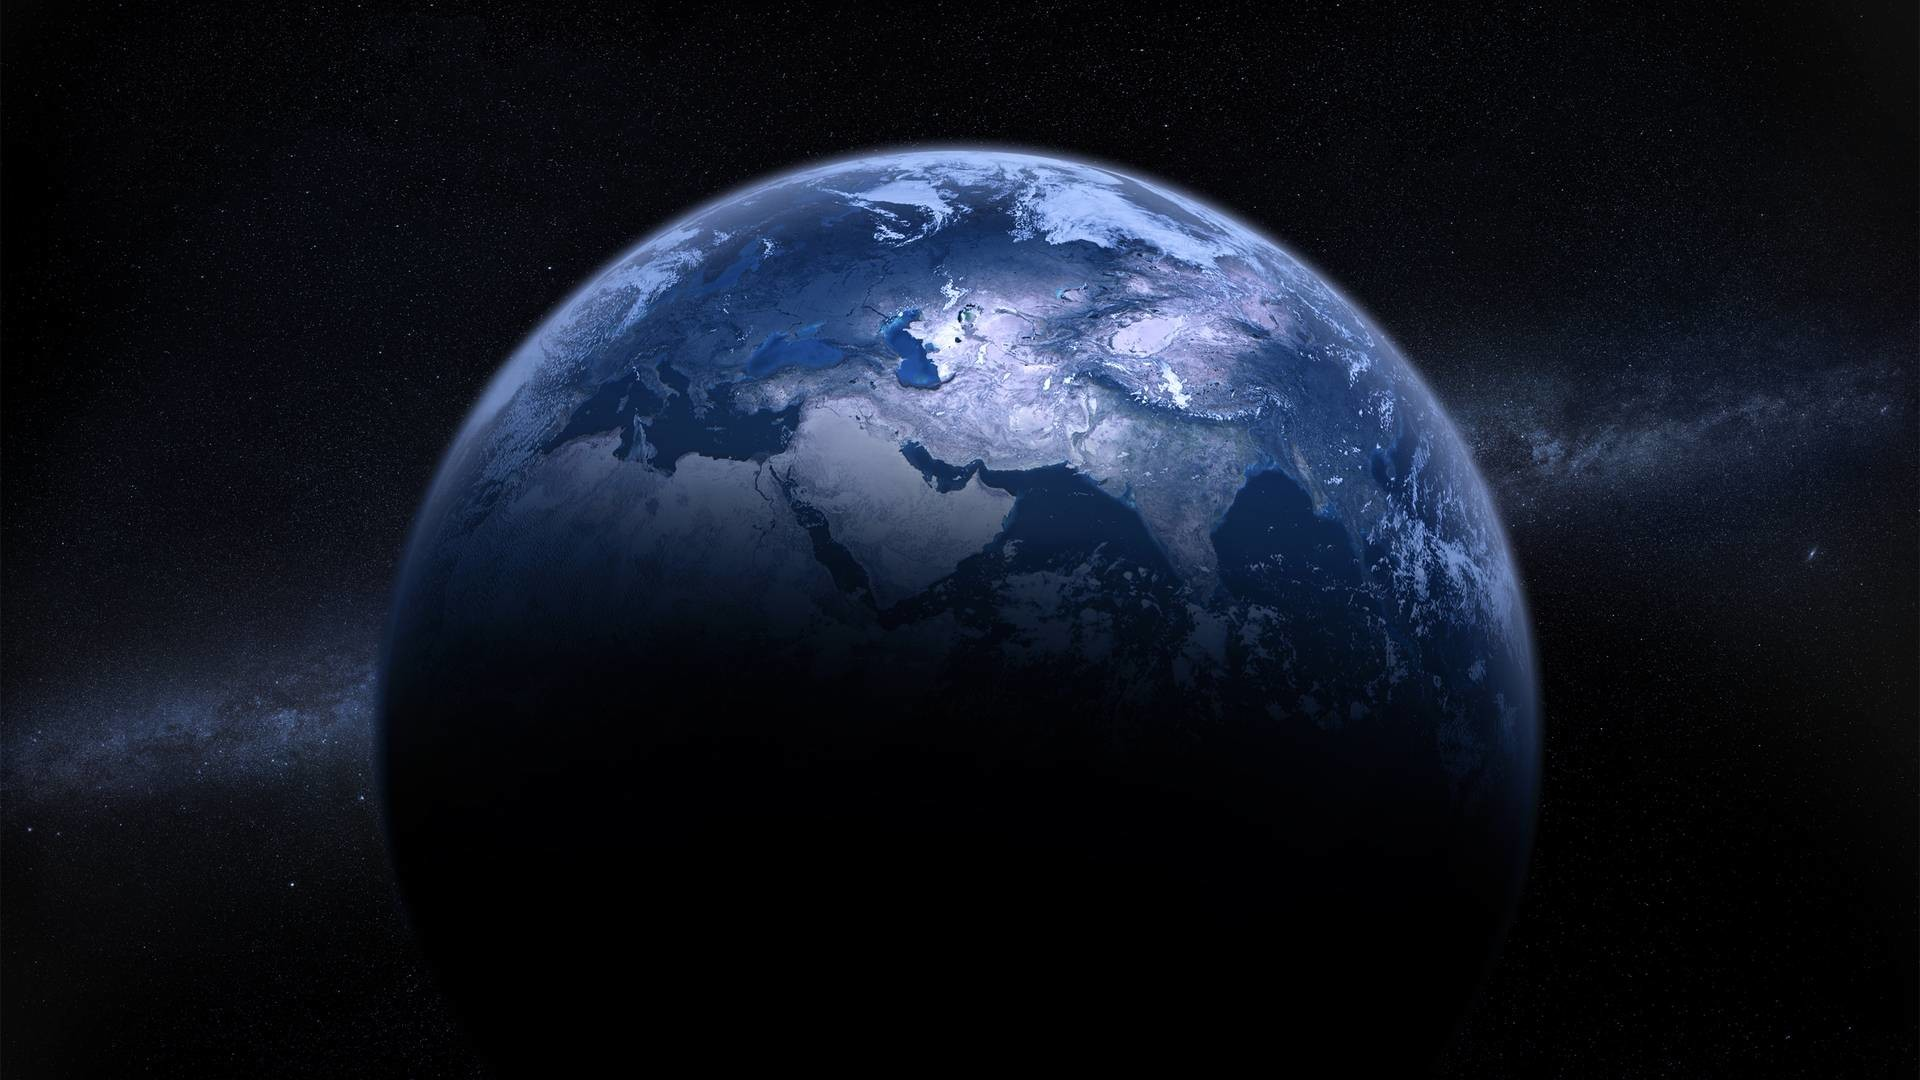 Earth From Space Wallpaper Background 1 HD Wallpapers .